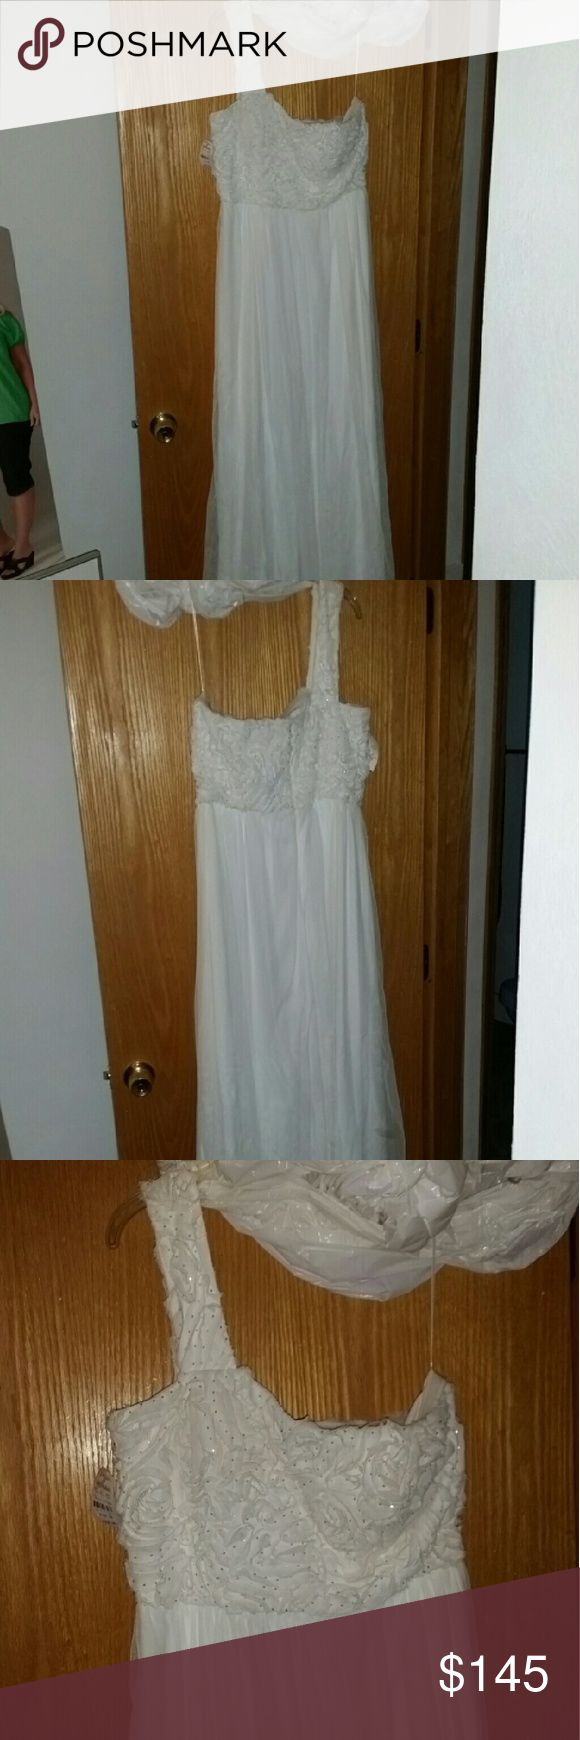 Long size 12 JS Boutique white 1 shoulder gown This gorgeous lown flowing gown from Lord & Taylor is NWT. Never used. Lightly wrinkled from being in the bag. You can easily steam it upon arrival. Perfect for a variety of occasions. Has nice sturdy elastic band to help it stay up on chest. True to size. JS Boutique Dresses One Shoulder